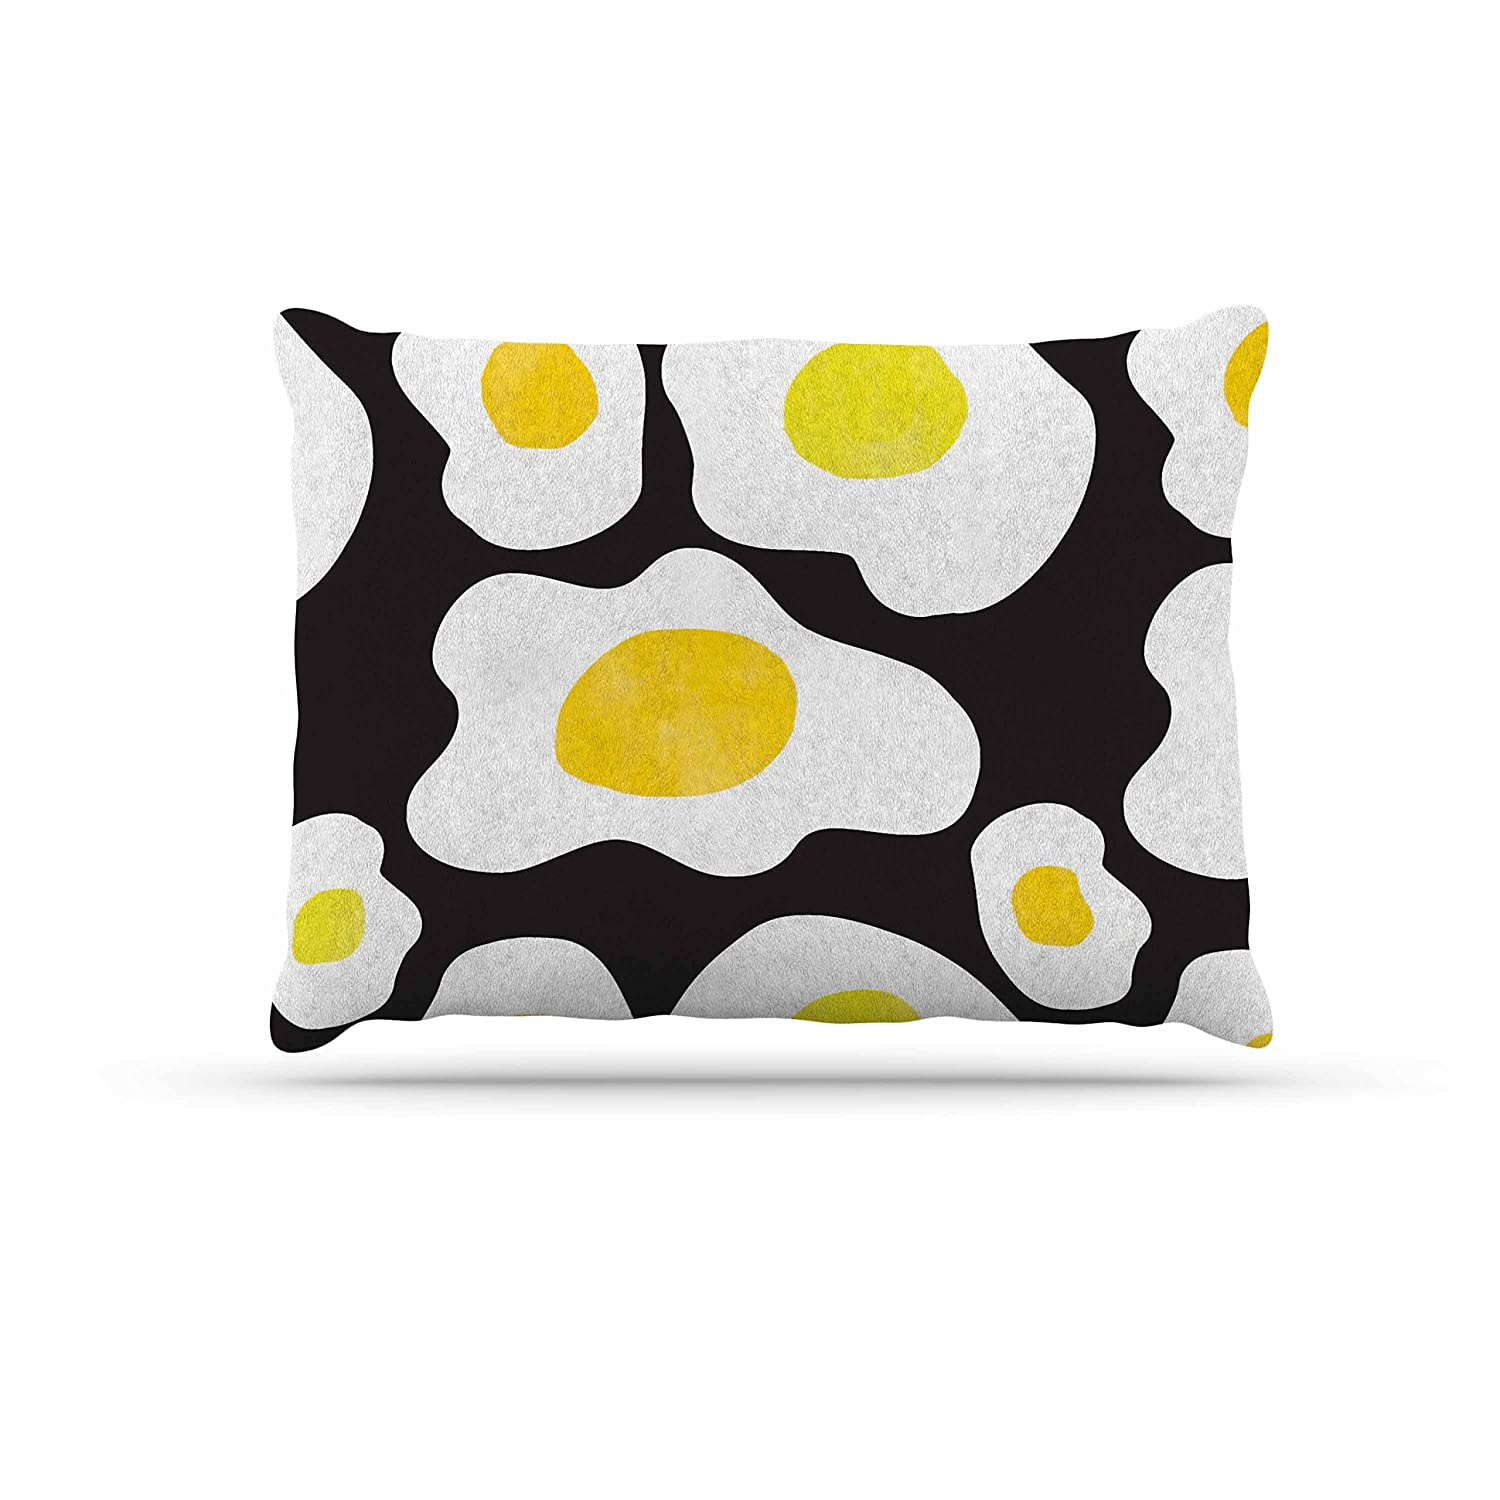 KESS InHouse Vasare NAR Fried Eggs Pattern Yellow Pop Art Dog Bed, 50  x 40